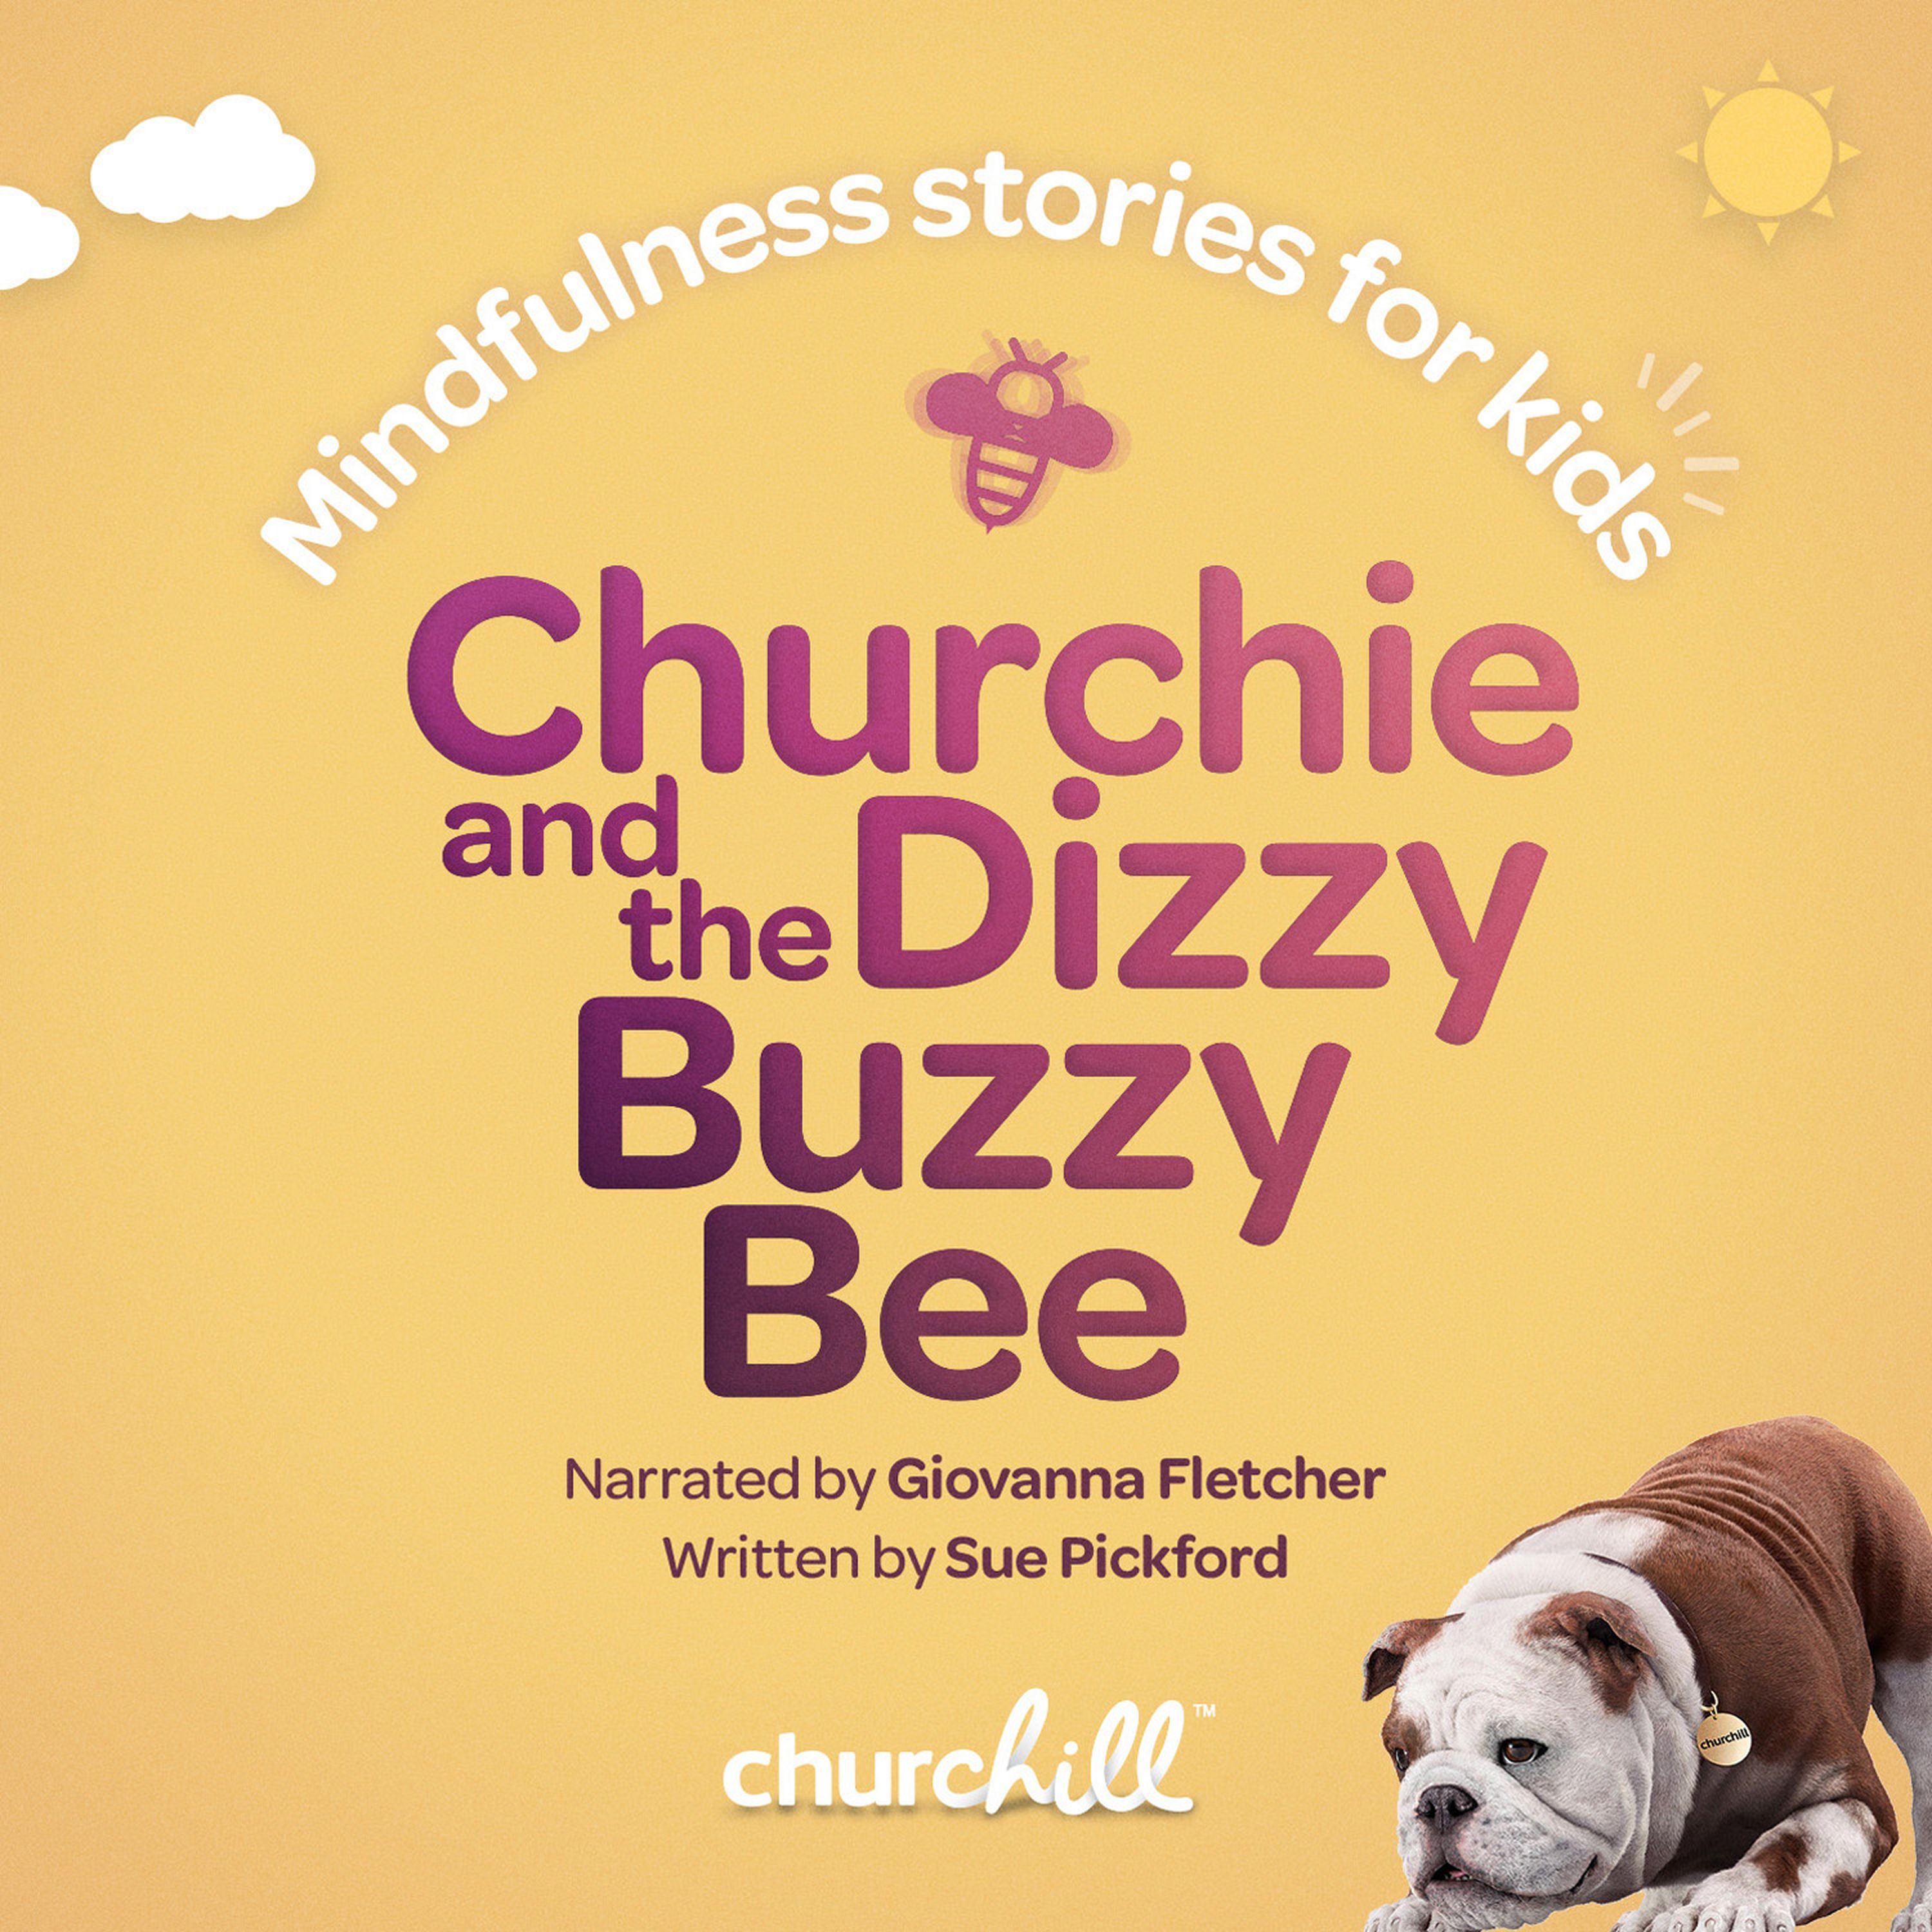 Churchie and the Dizzy Buzzy Bee